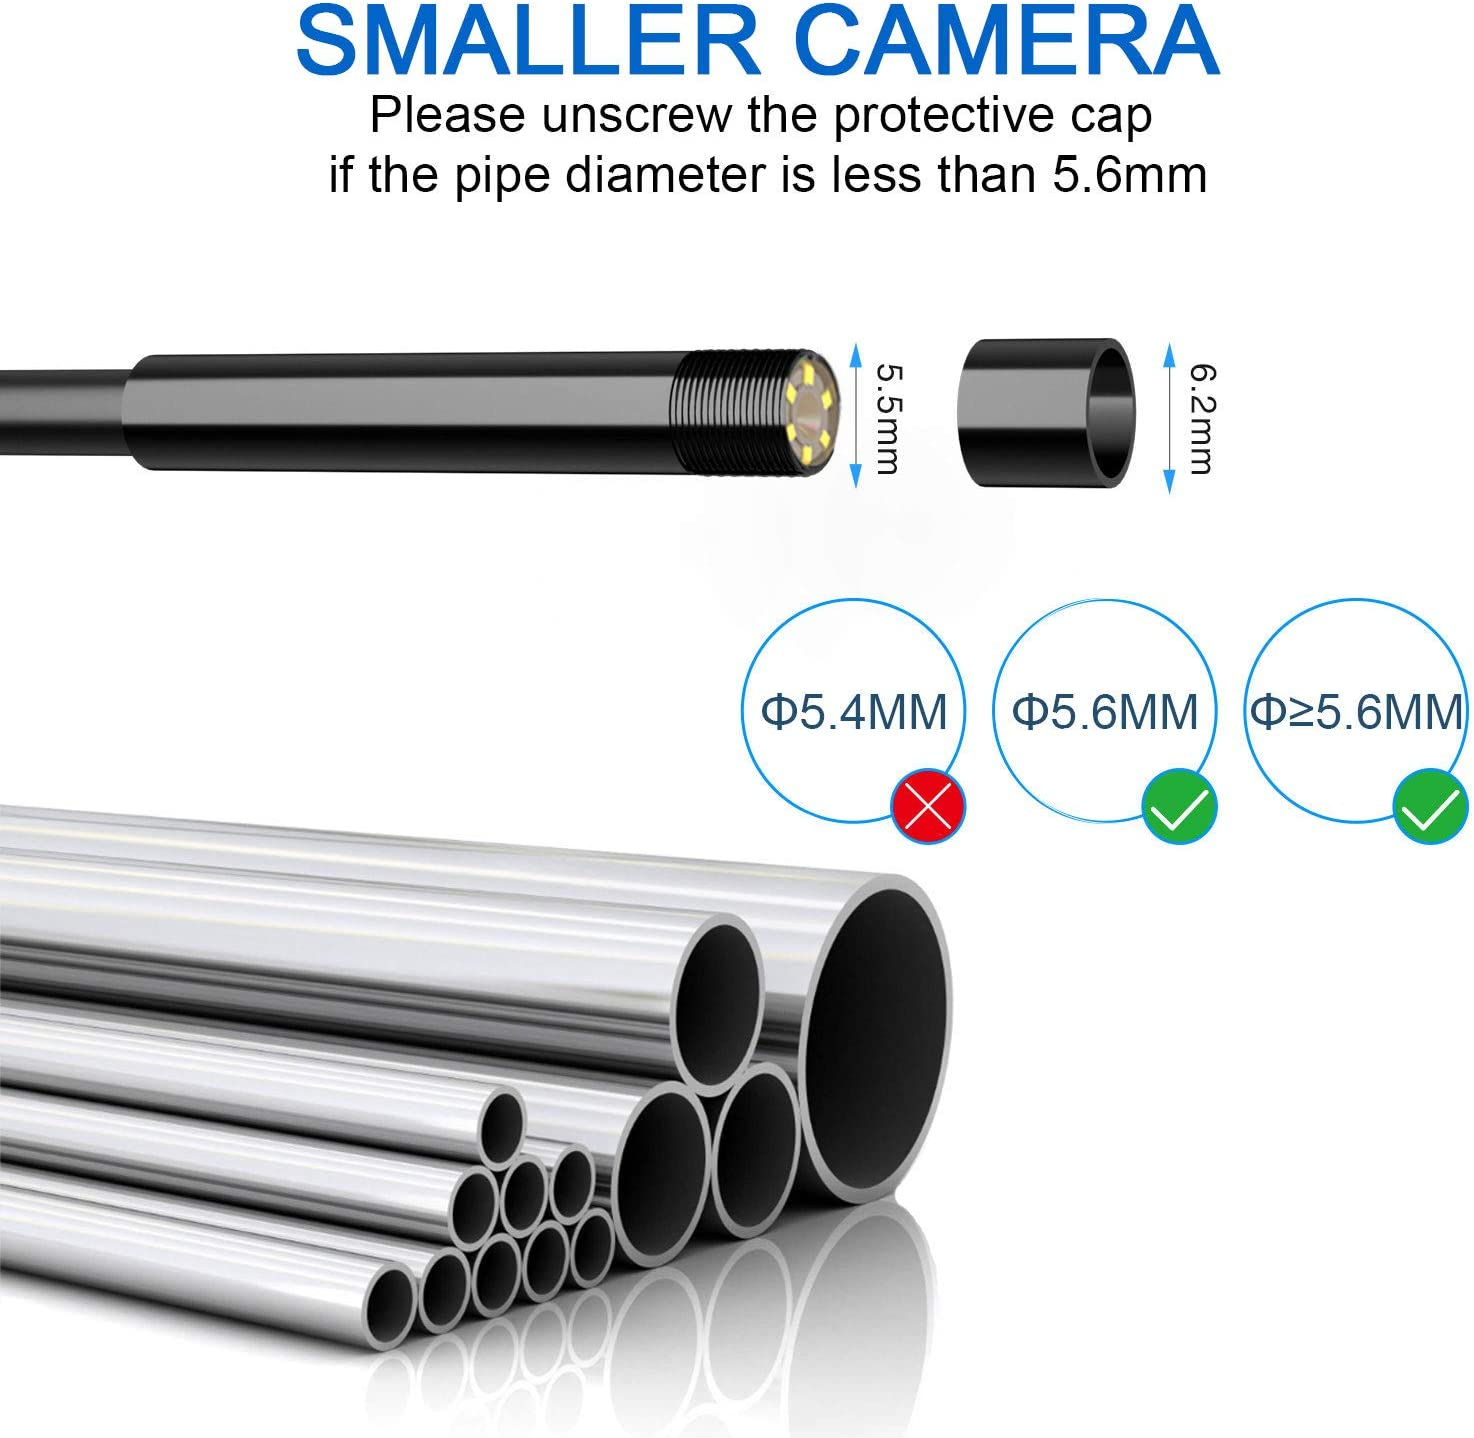 Pipe Detecting Snake Camera for Automotive Engine 1080P HD 5.5MM Borescope with 4.3inch Screen 8GB TF Card 33FT Inspection Camera IP67 Waterproof Industrial Endoscope Camera with 2800nAh Battery